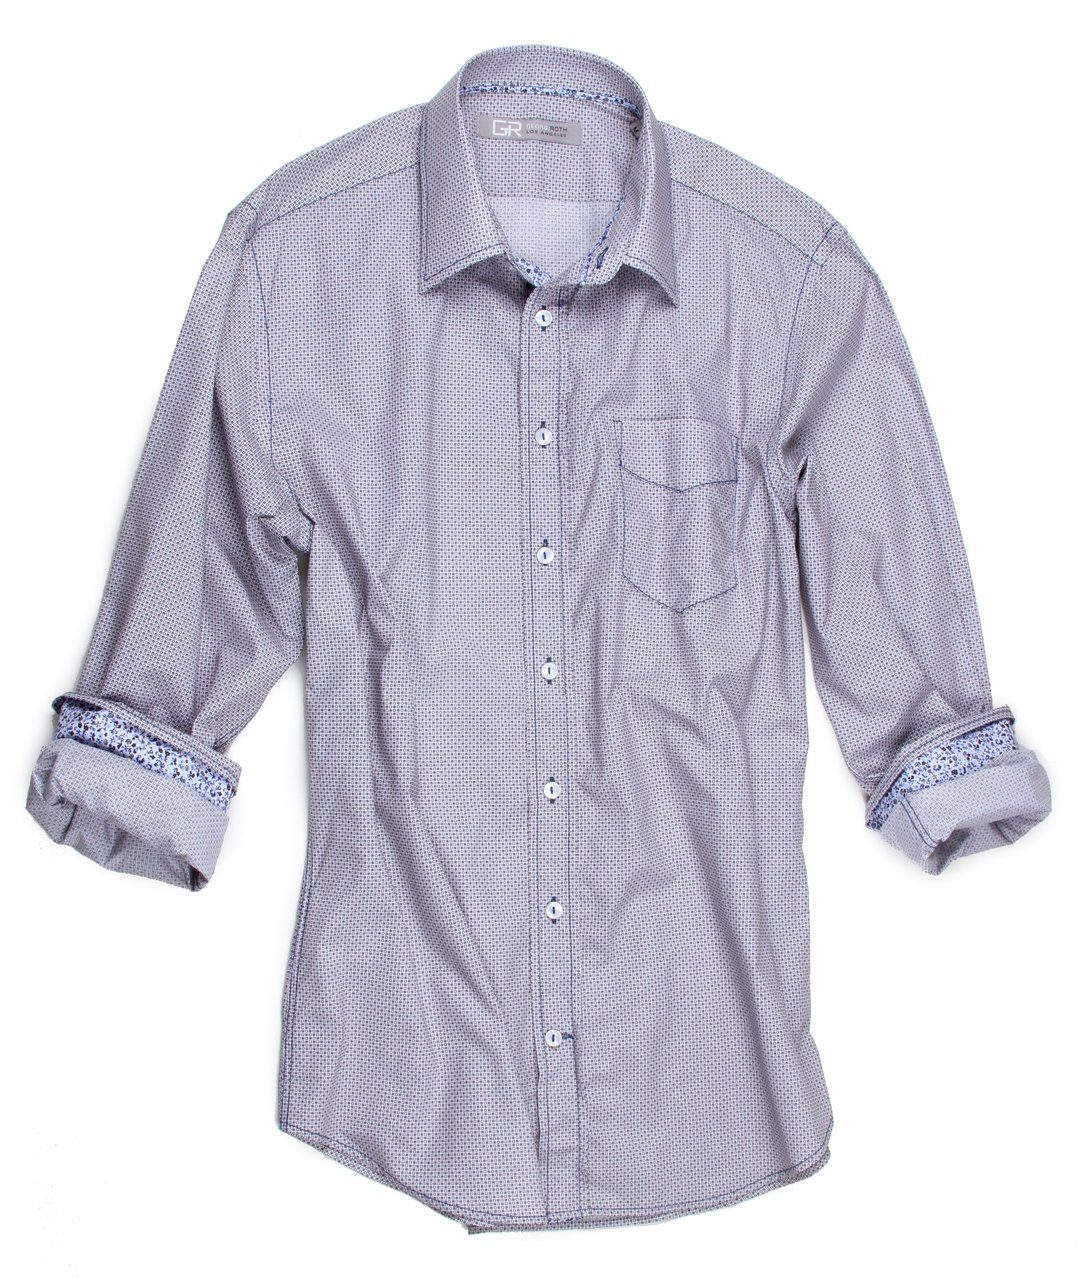 CLIFTON 16060-038 LONG SLEEVES,SPORT SHIRT,GEORG ROTH, | GentRow.com